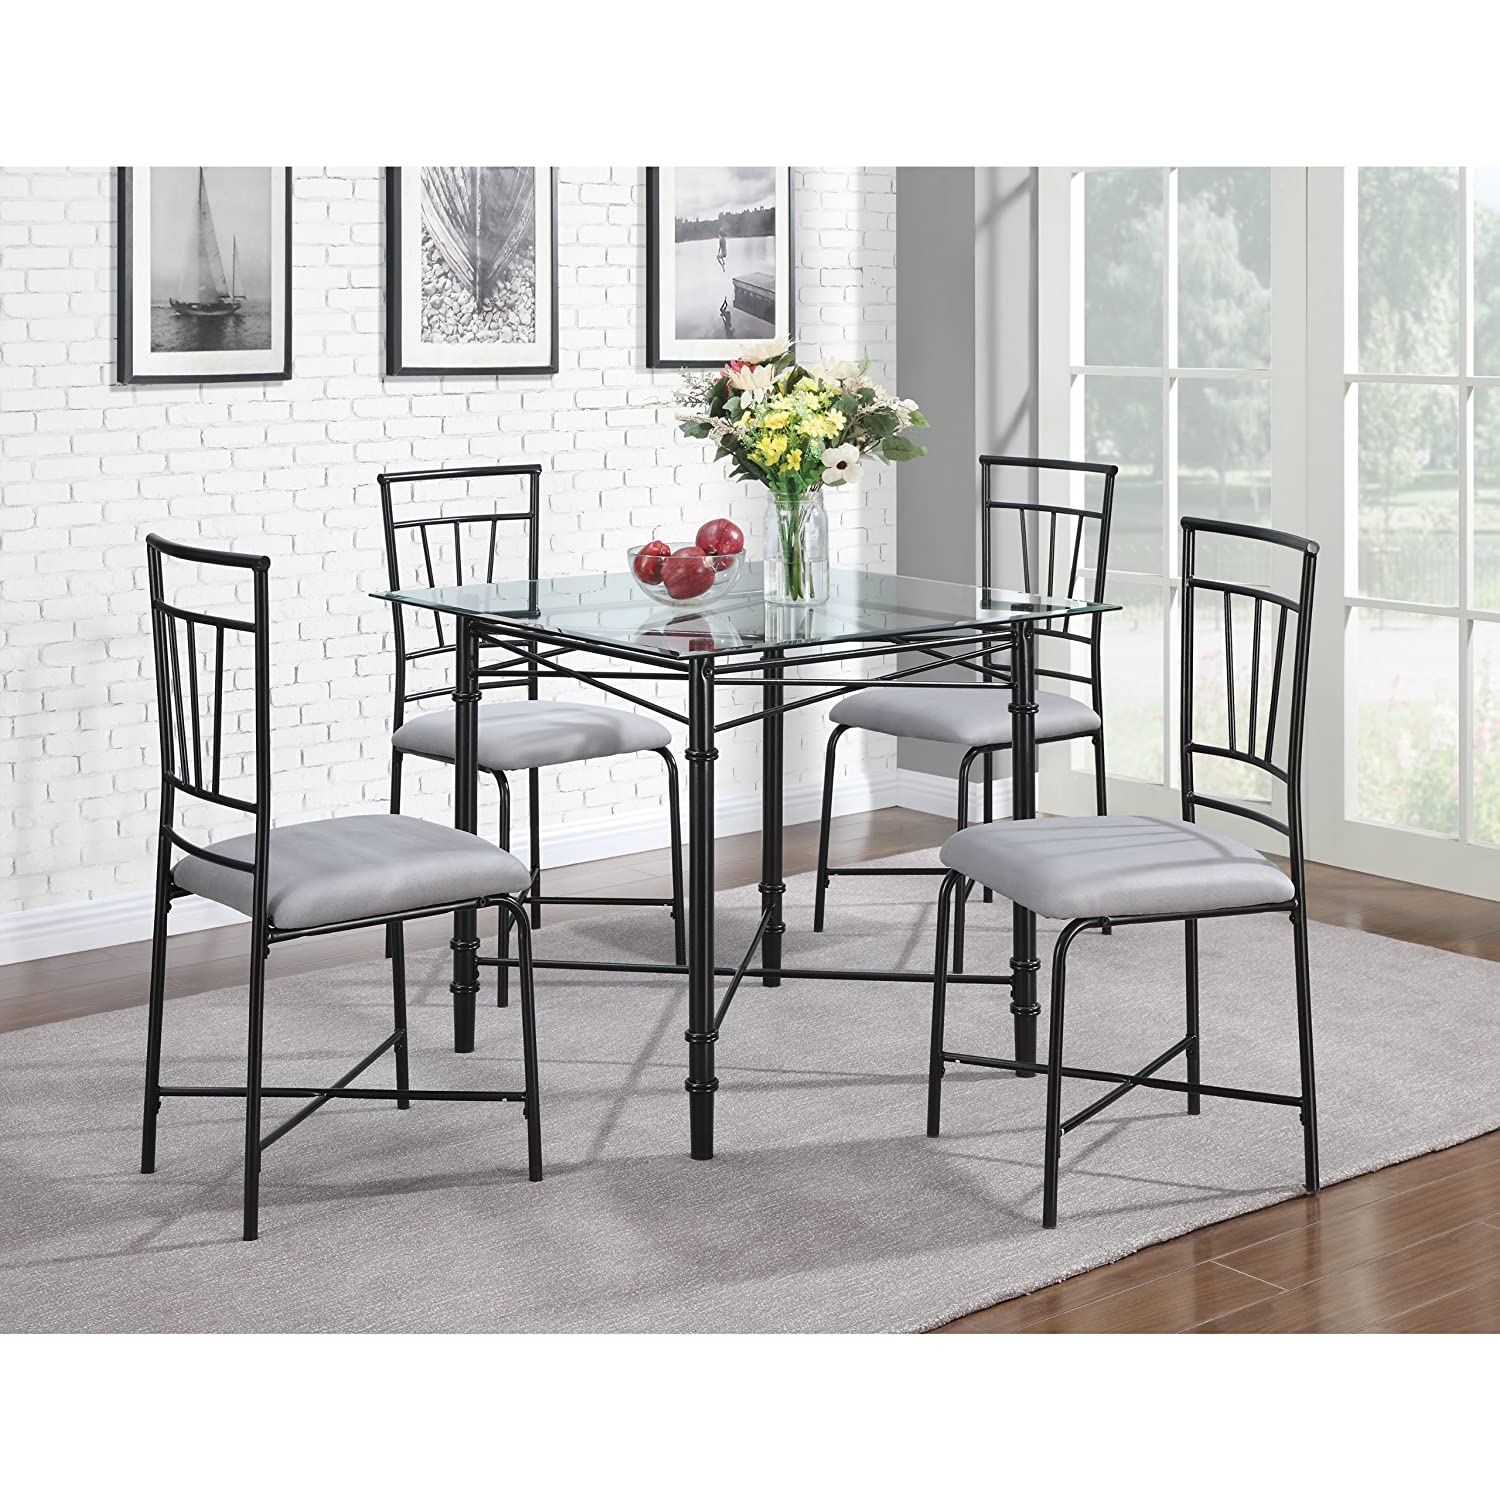 Amazon.com: Dorel Living 5-Piece Glass Top Metal Dining Set ...